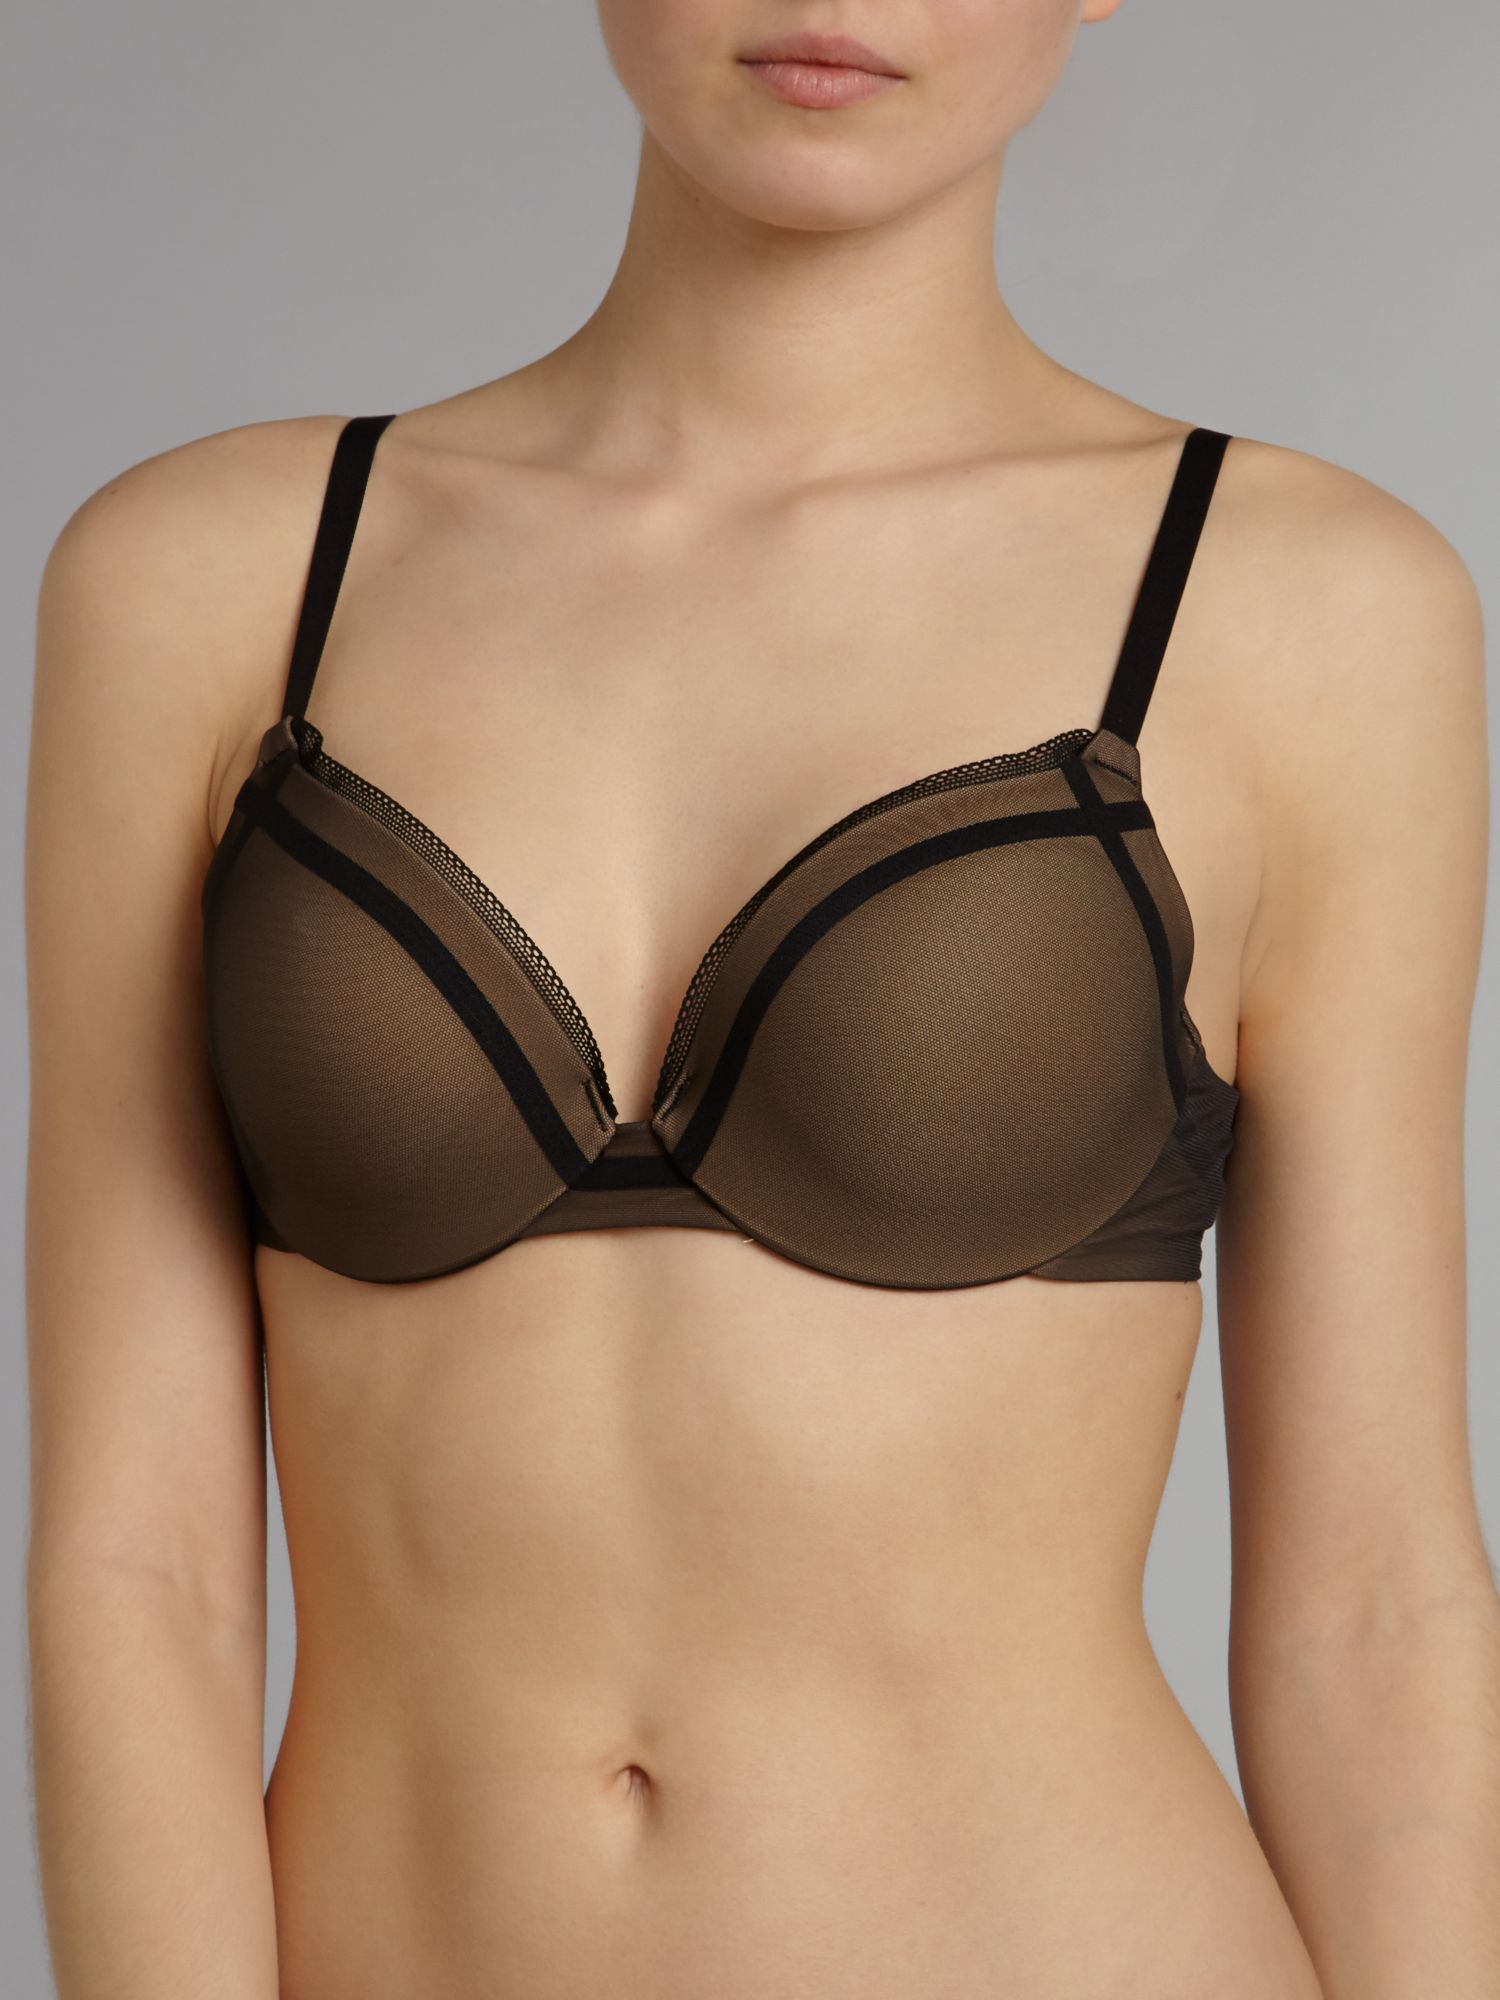 Enthralled custom lift cross bra